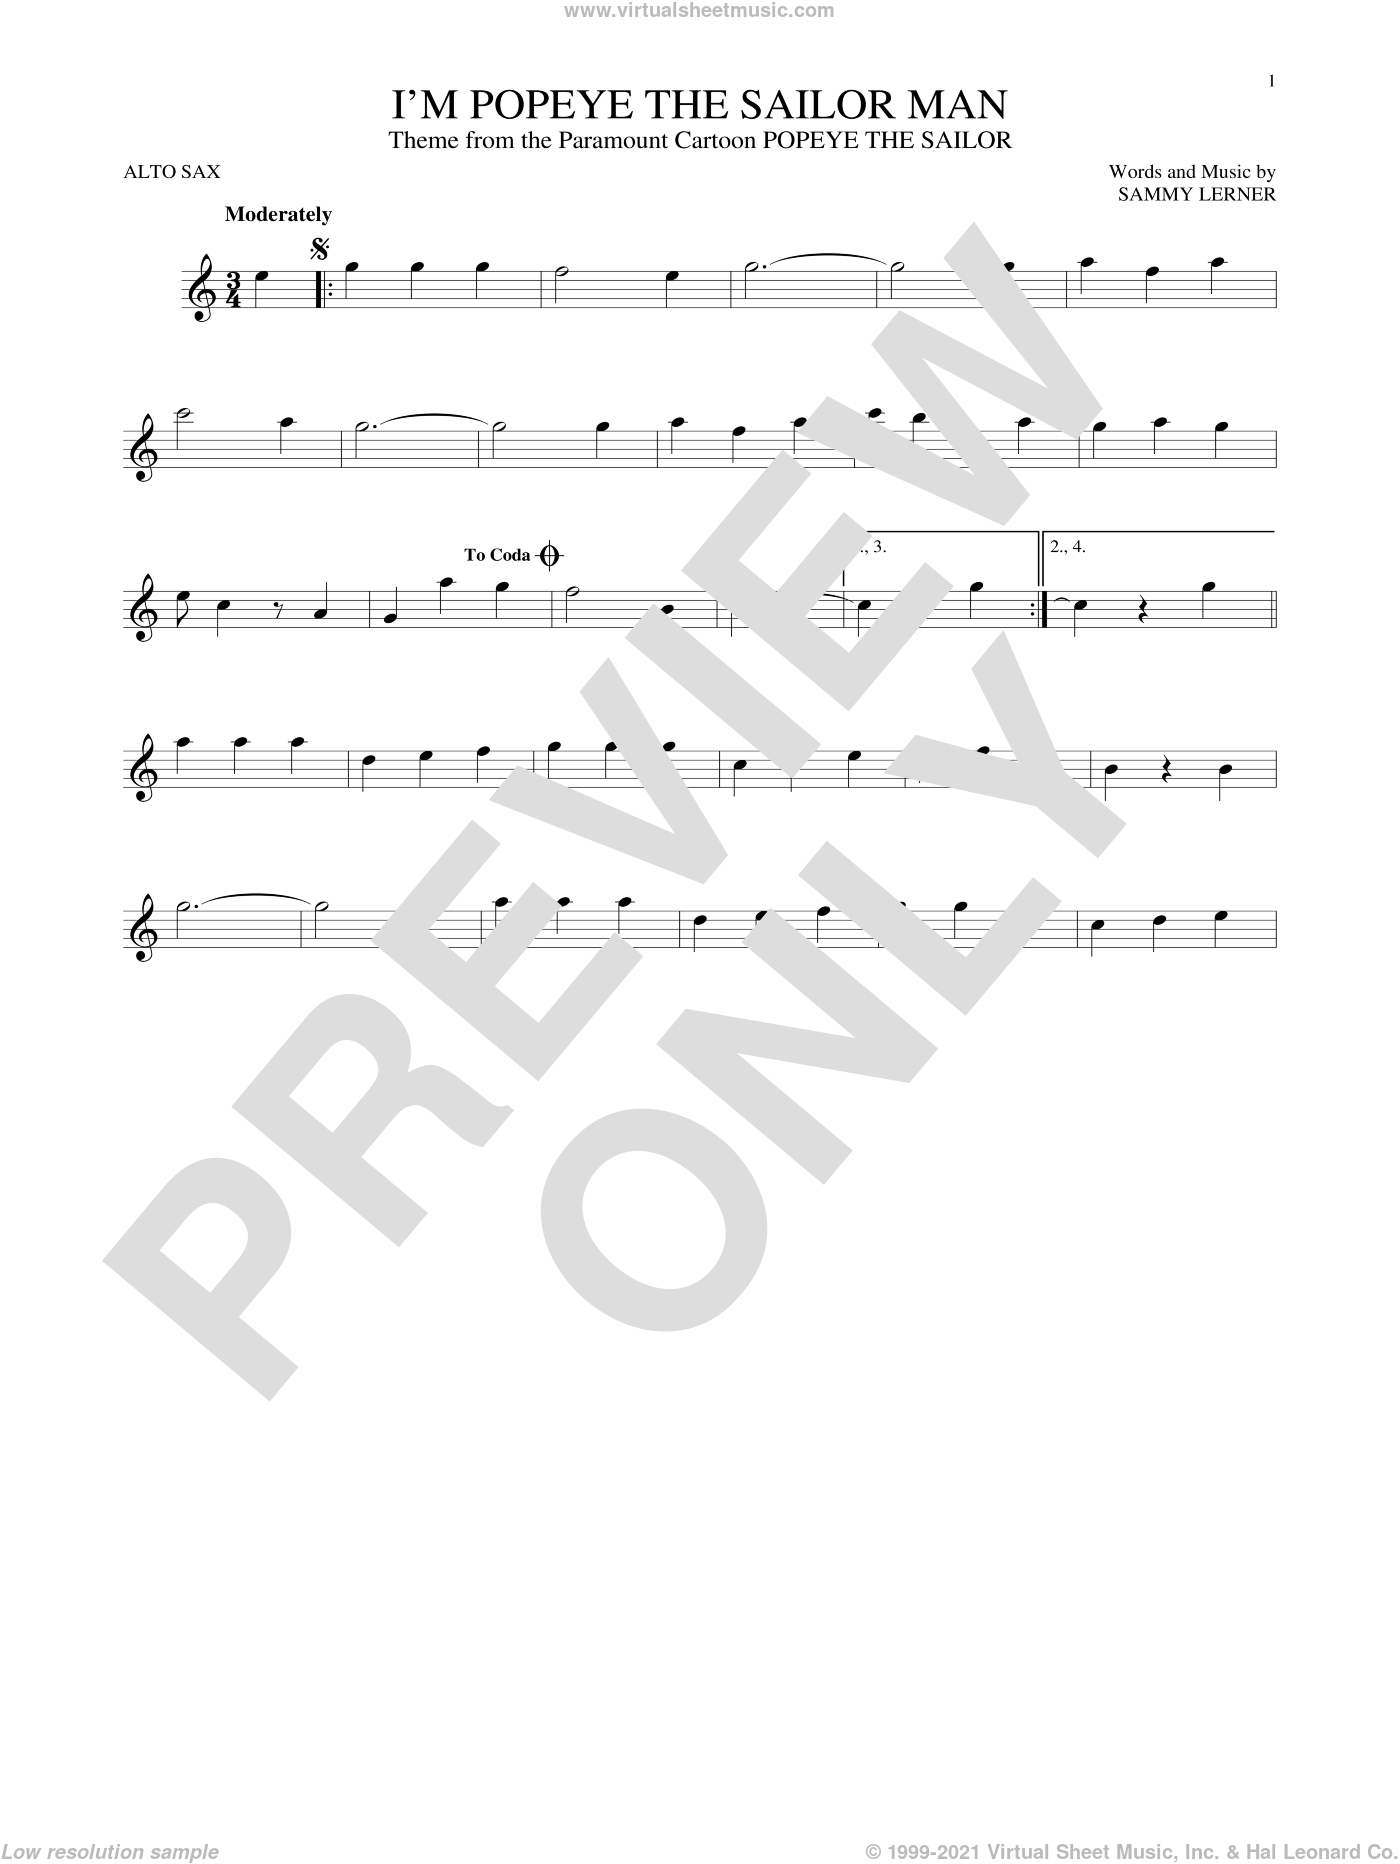 I'm Popeye The Sailor Man sheet music for alto saxophone solo by Sammy Lerner. Score Image Preview.